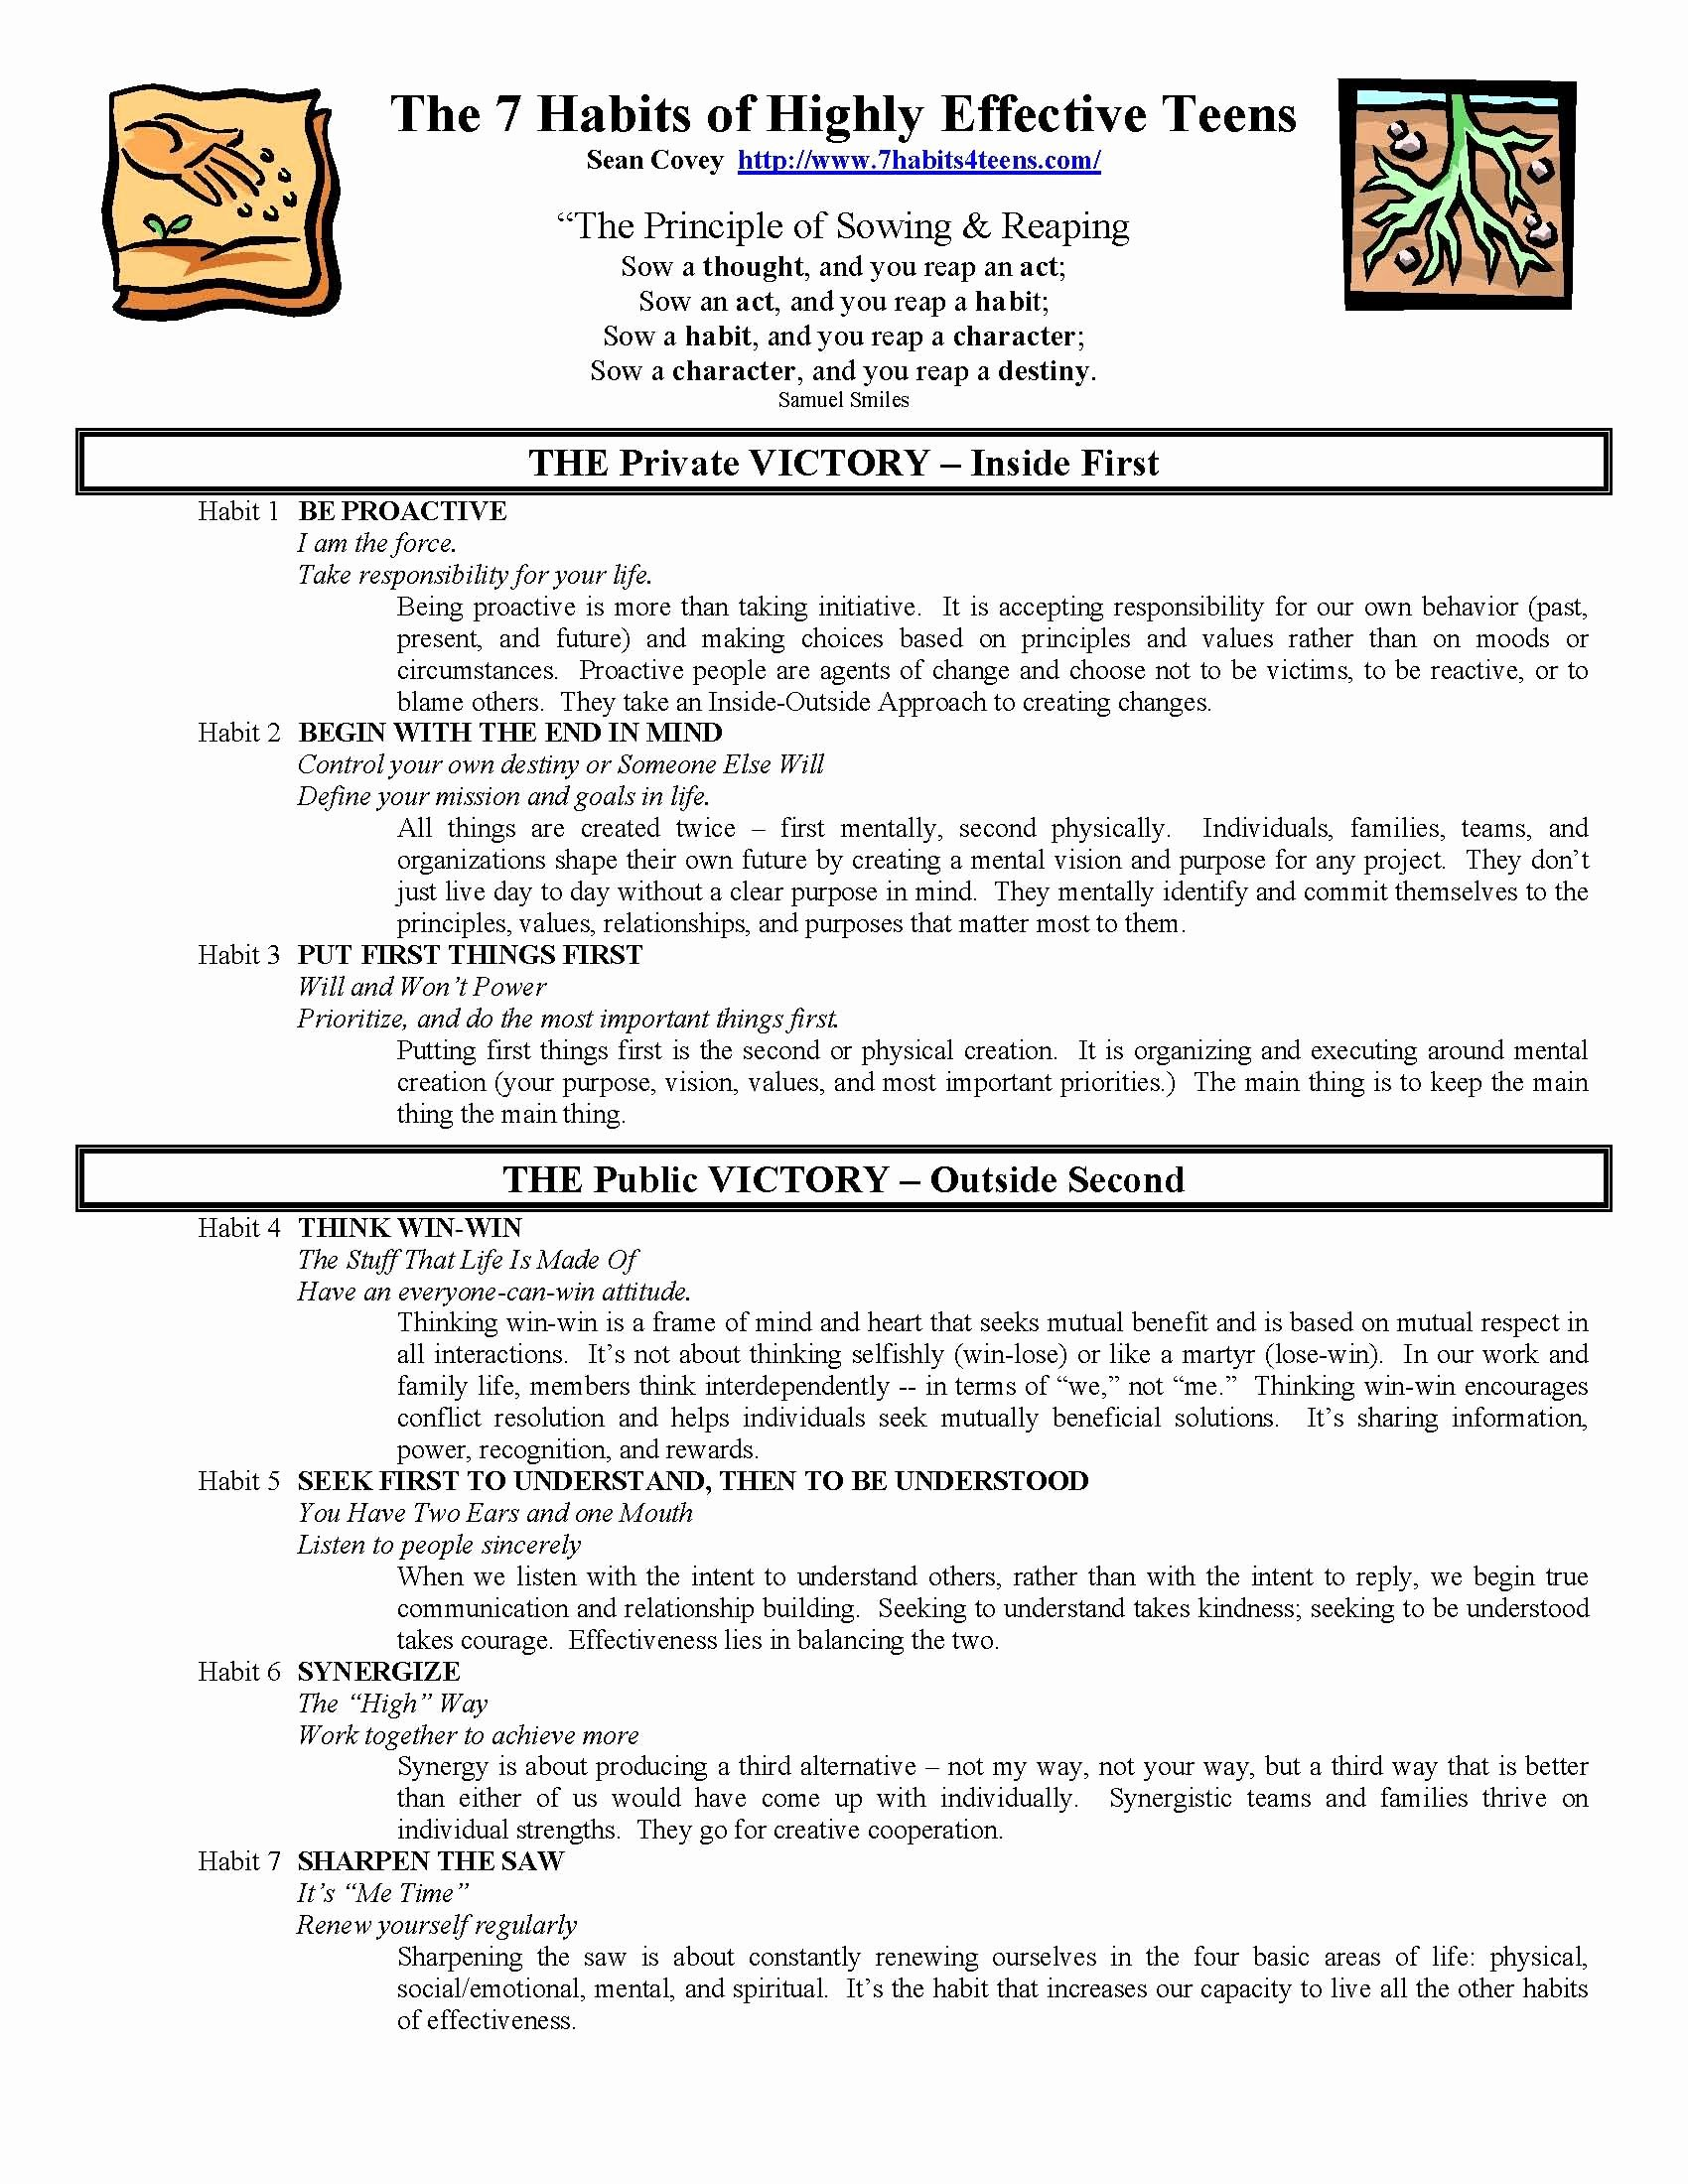 7 Habits Worksheet Pdf Luxury the 7 Habits Of Highly Effective Teens Summary Sheet